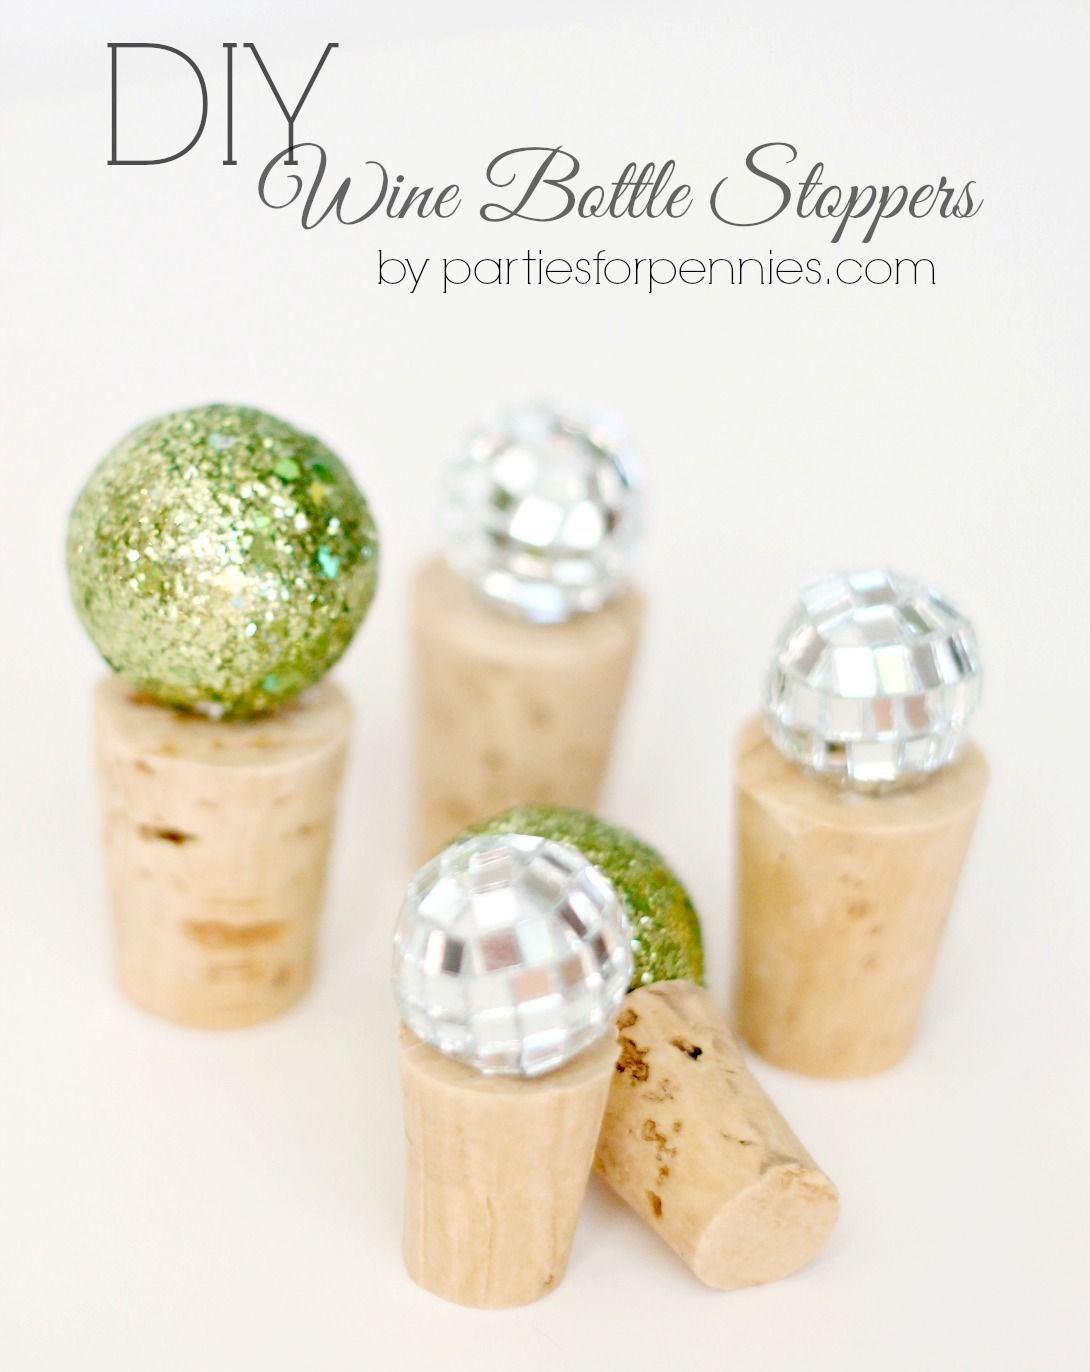 Diy Wine Bottle Stoppers Parties For Pennies Wine Bottle Diy Wine Bottle Stoppers Wine Stopper Diy